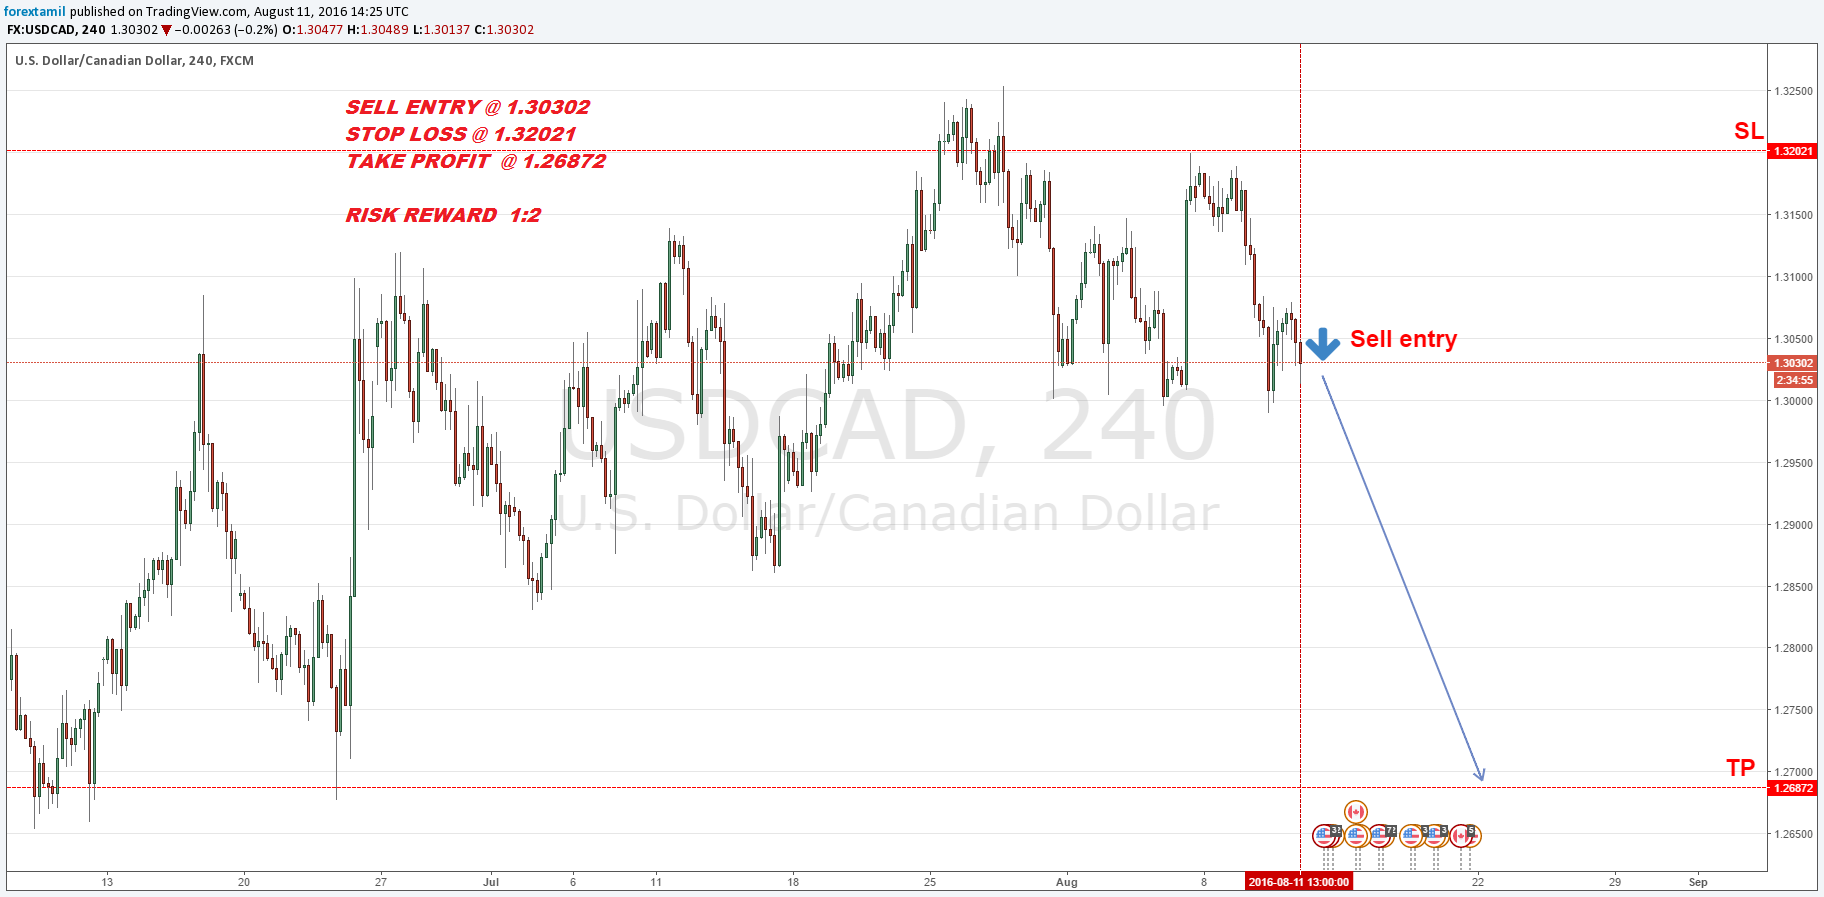 Q-FOREX LIVE CHALLENGING SIGNALS USD/CAD  SELL  ENTRY @ 1.30302